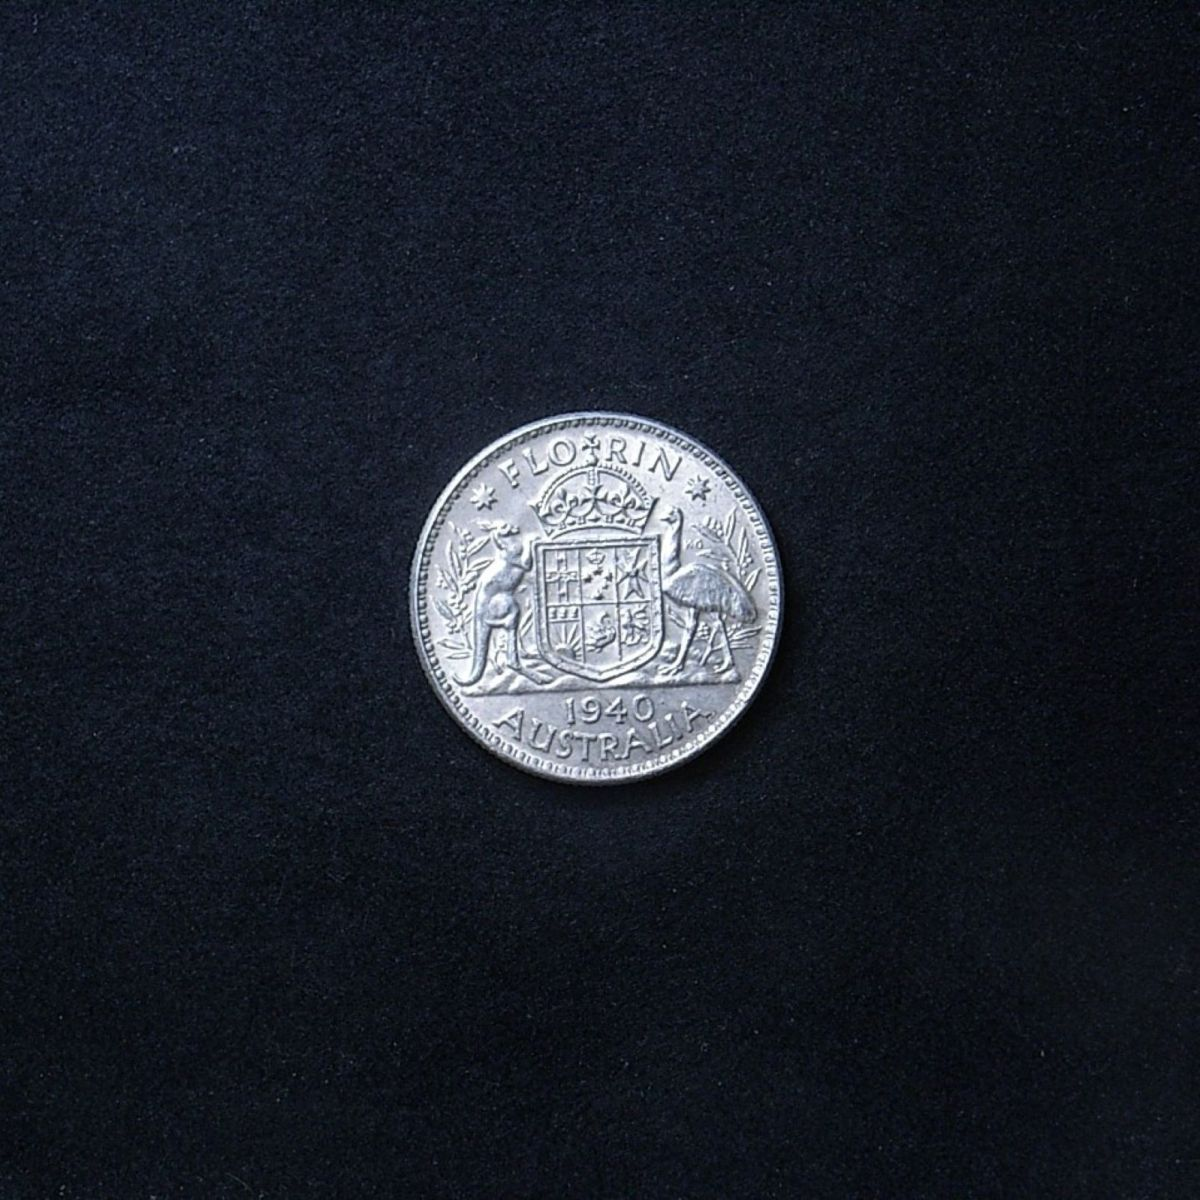 Aussie 1940 florin reverse, different light angle highlighting the coin's lustre